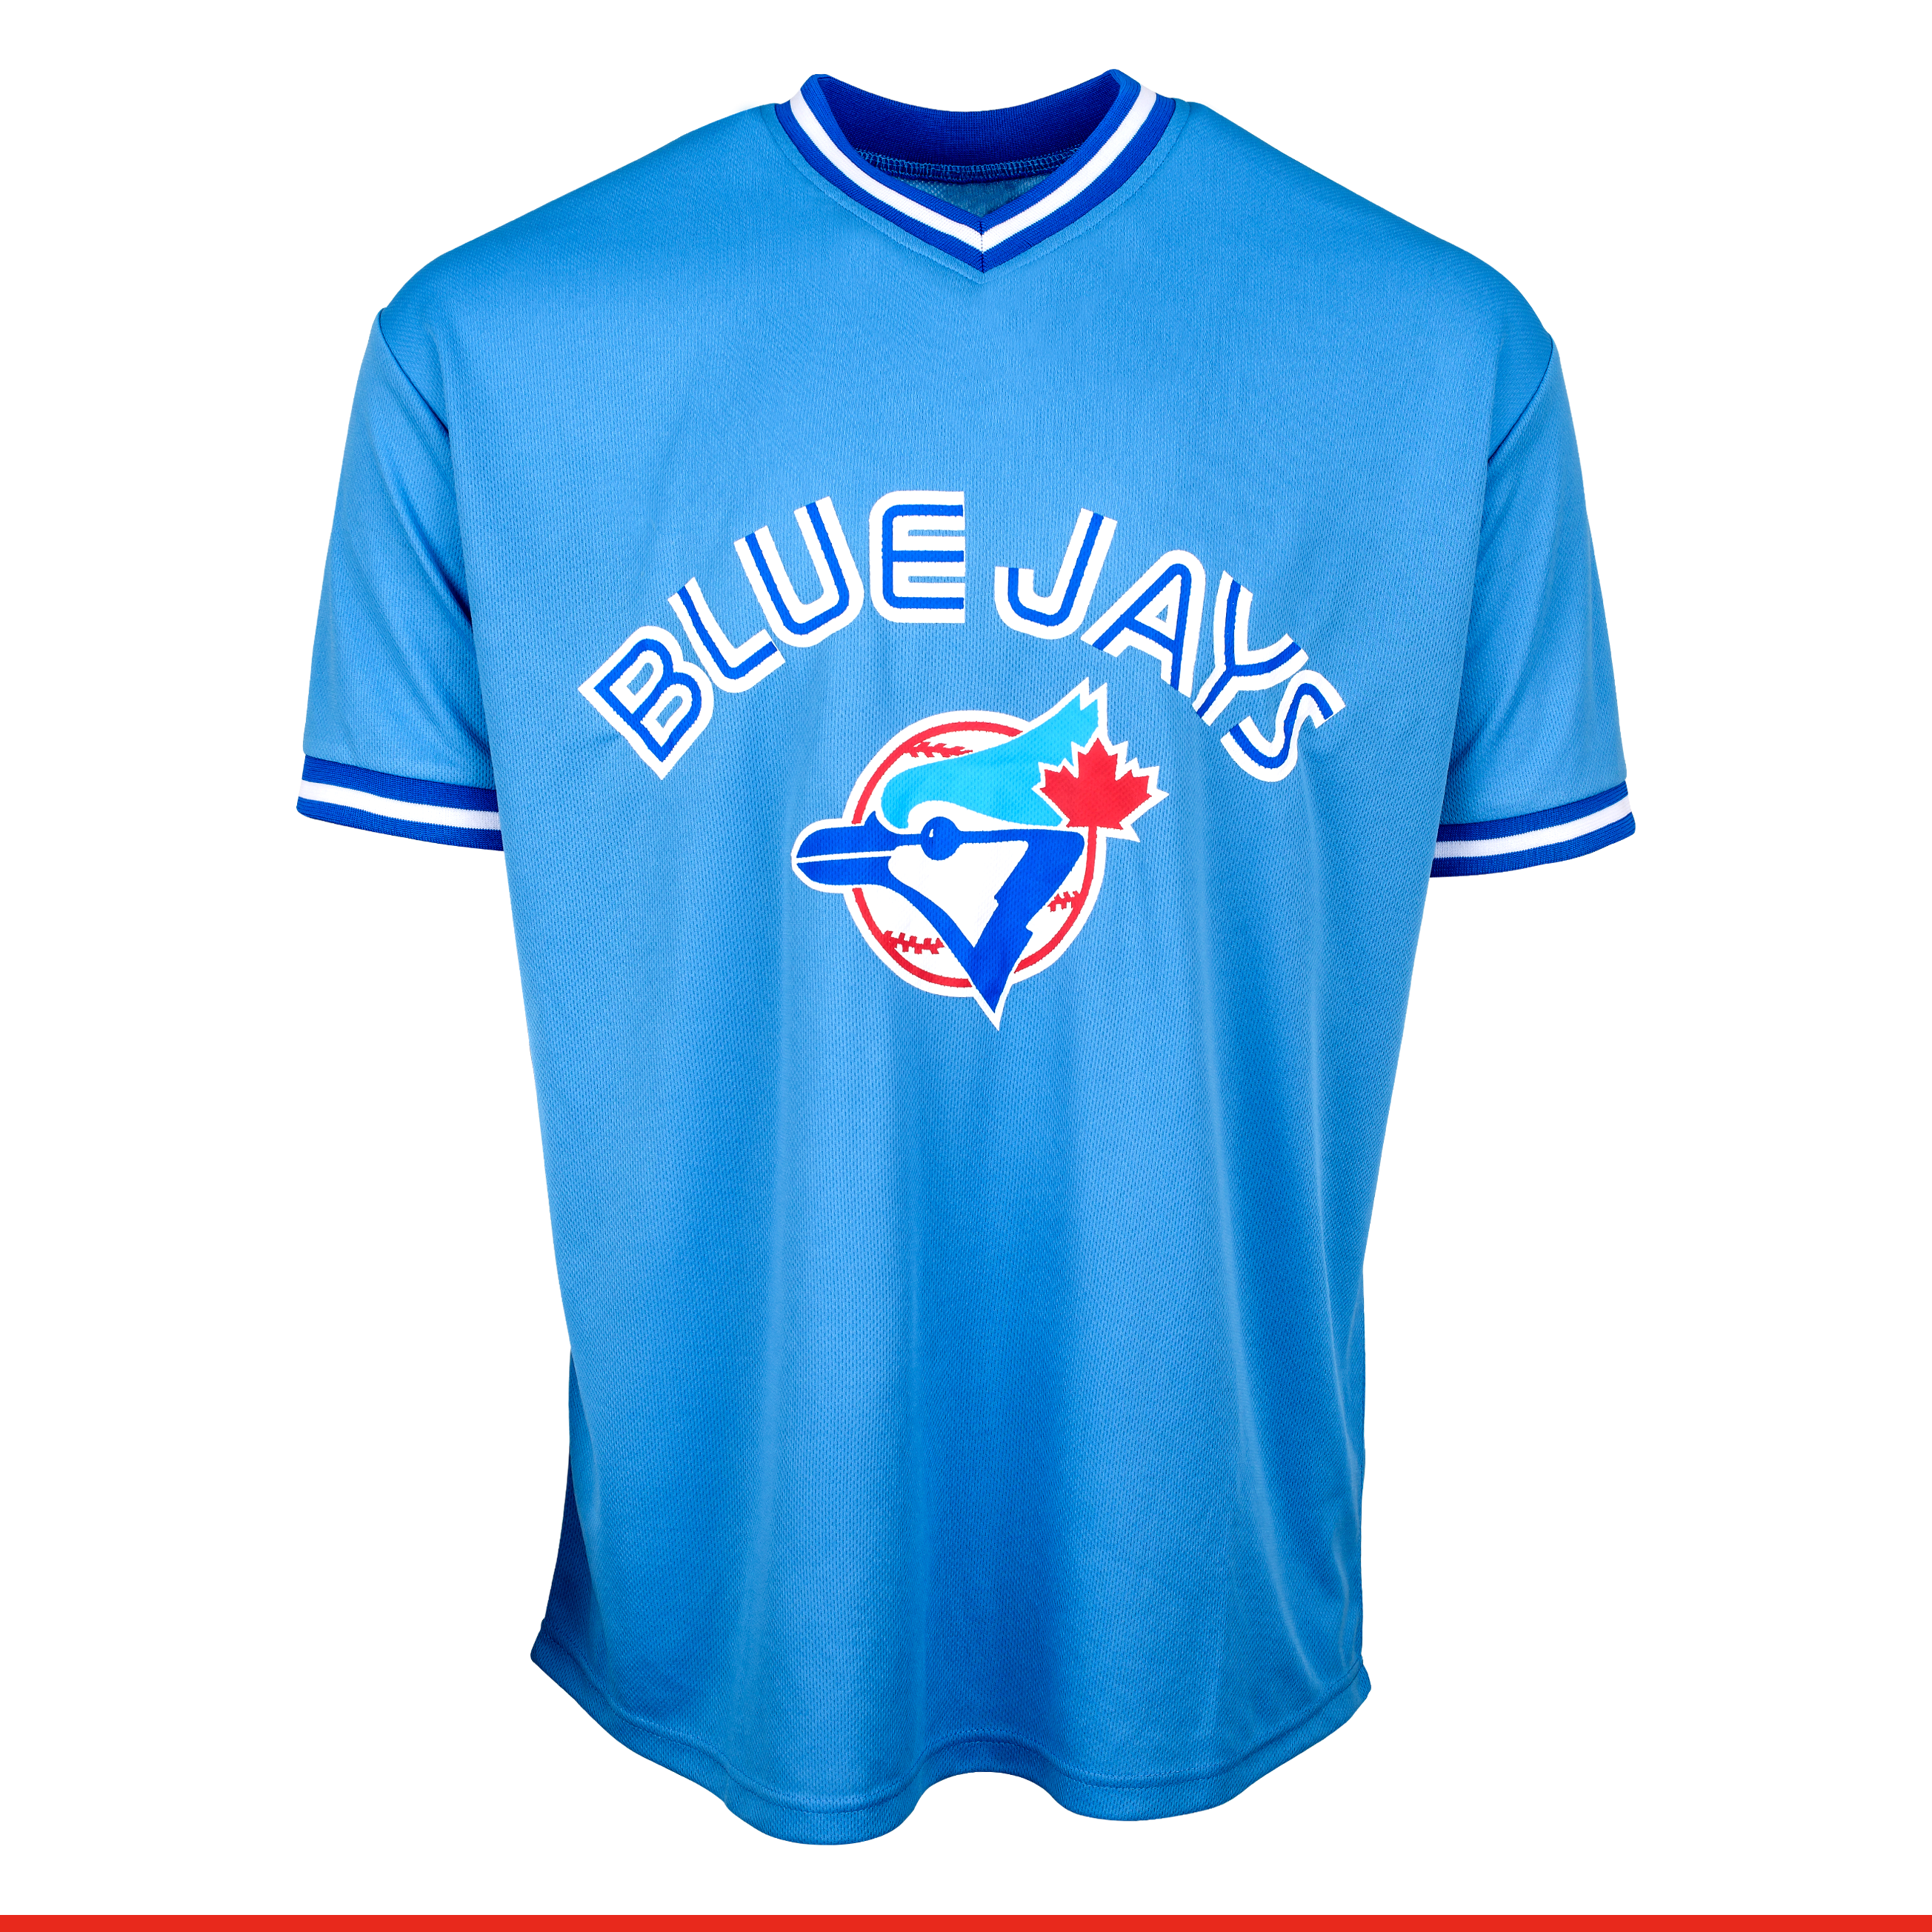 27b28f21952e93 Promotions and Events Schedule | Toronto Blue Jays